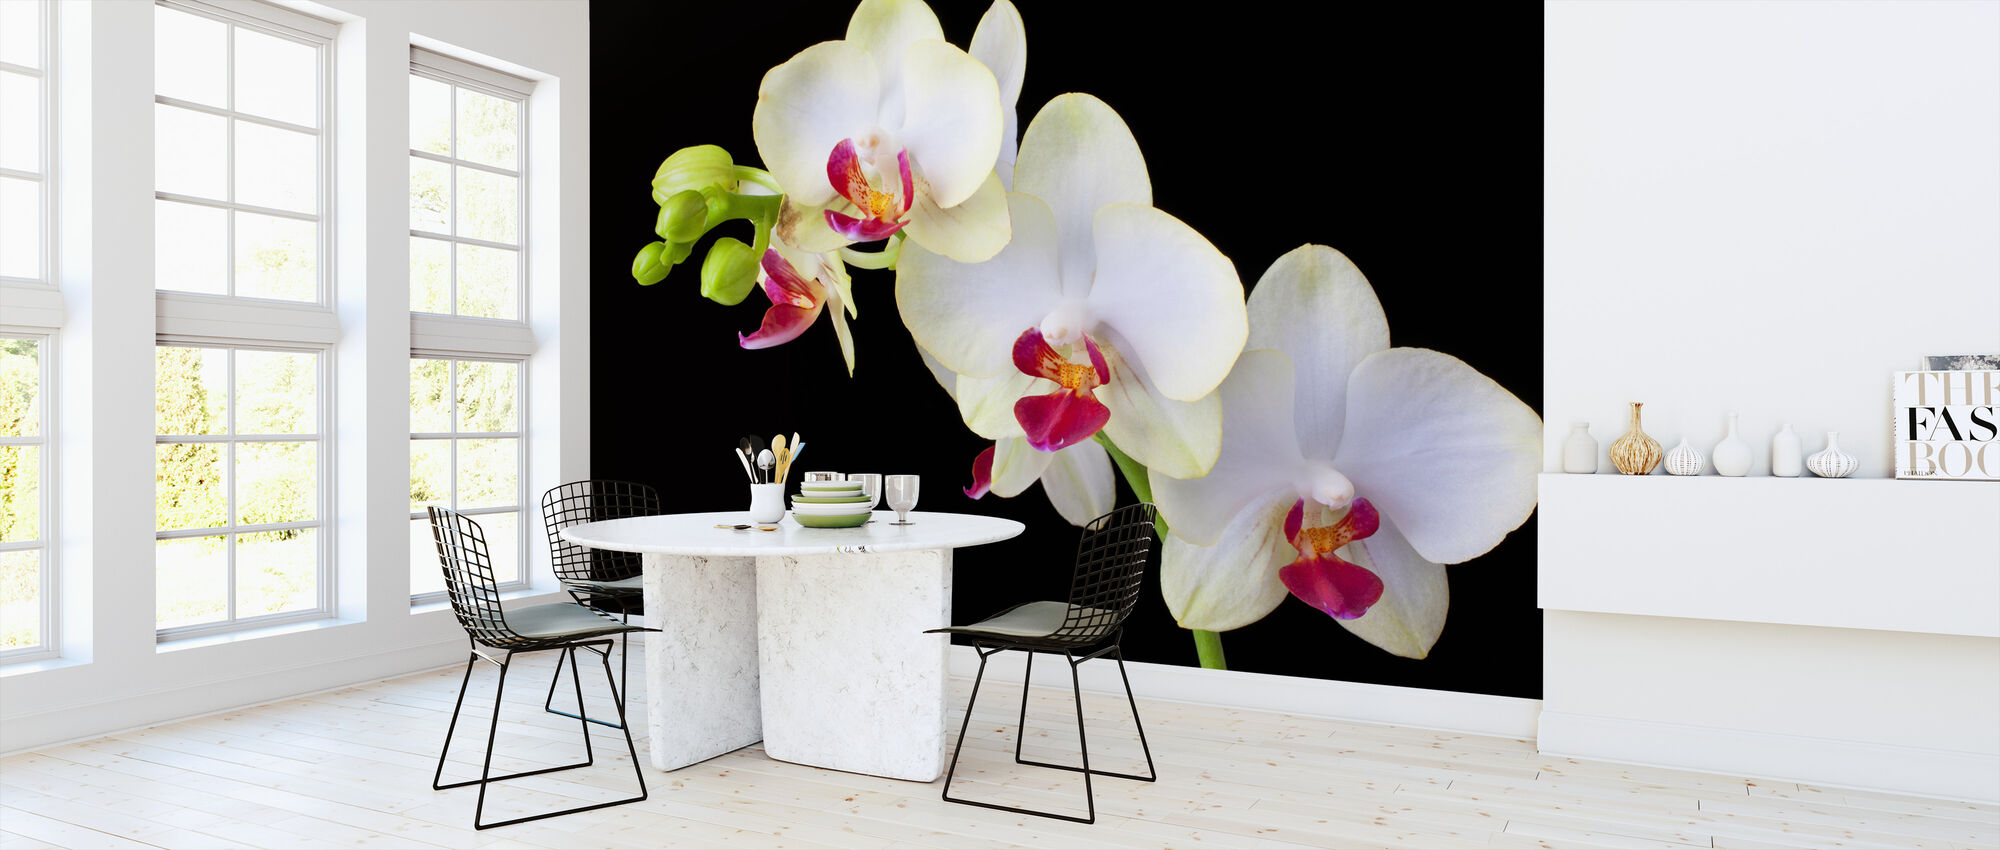 White Orchids on Black Background - Wallpaper - Kitchen